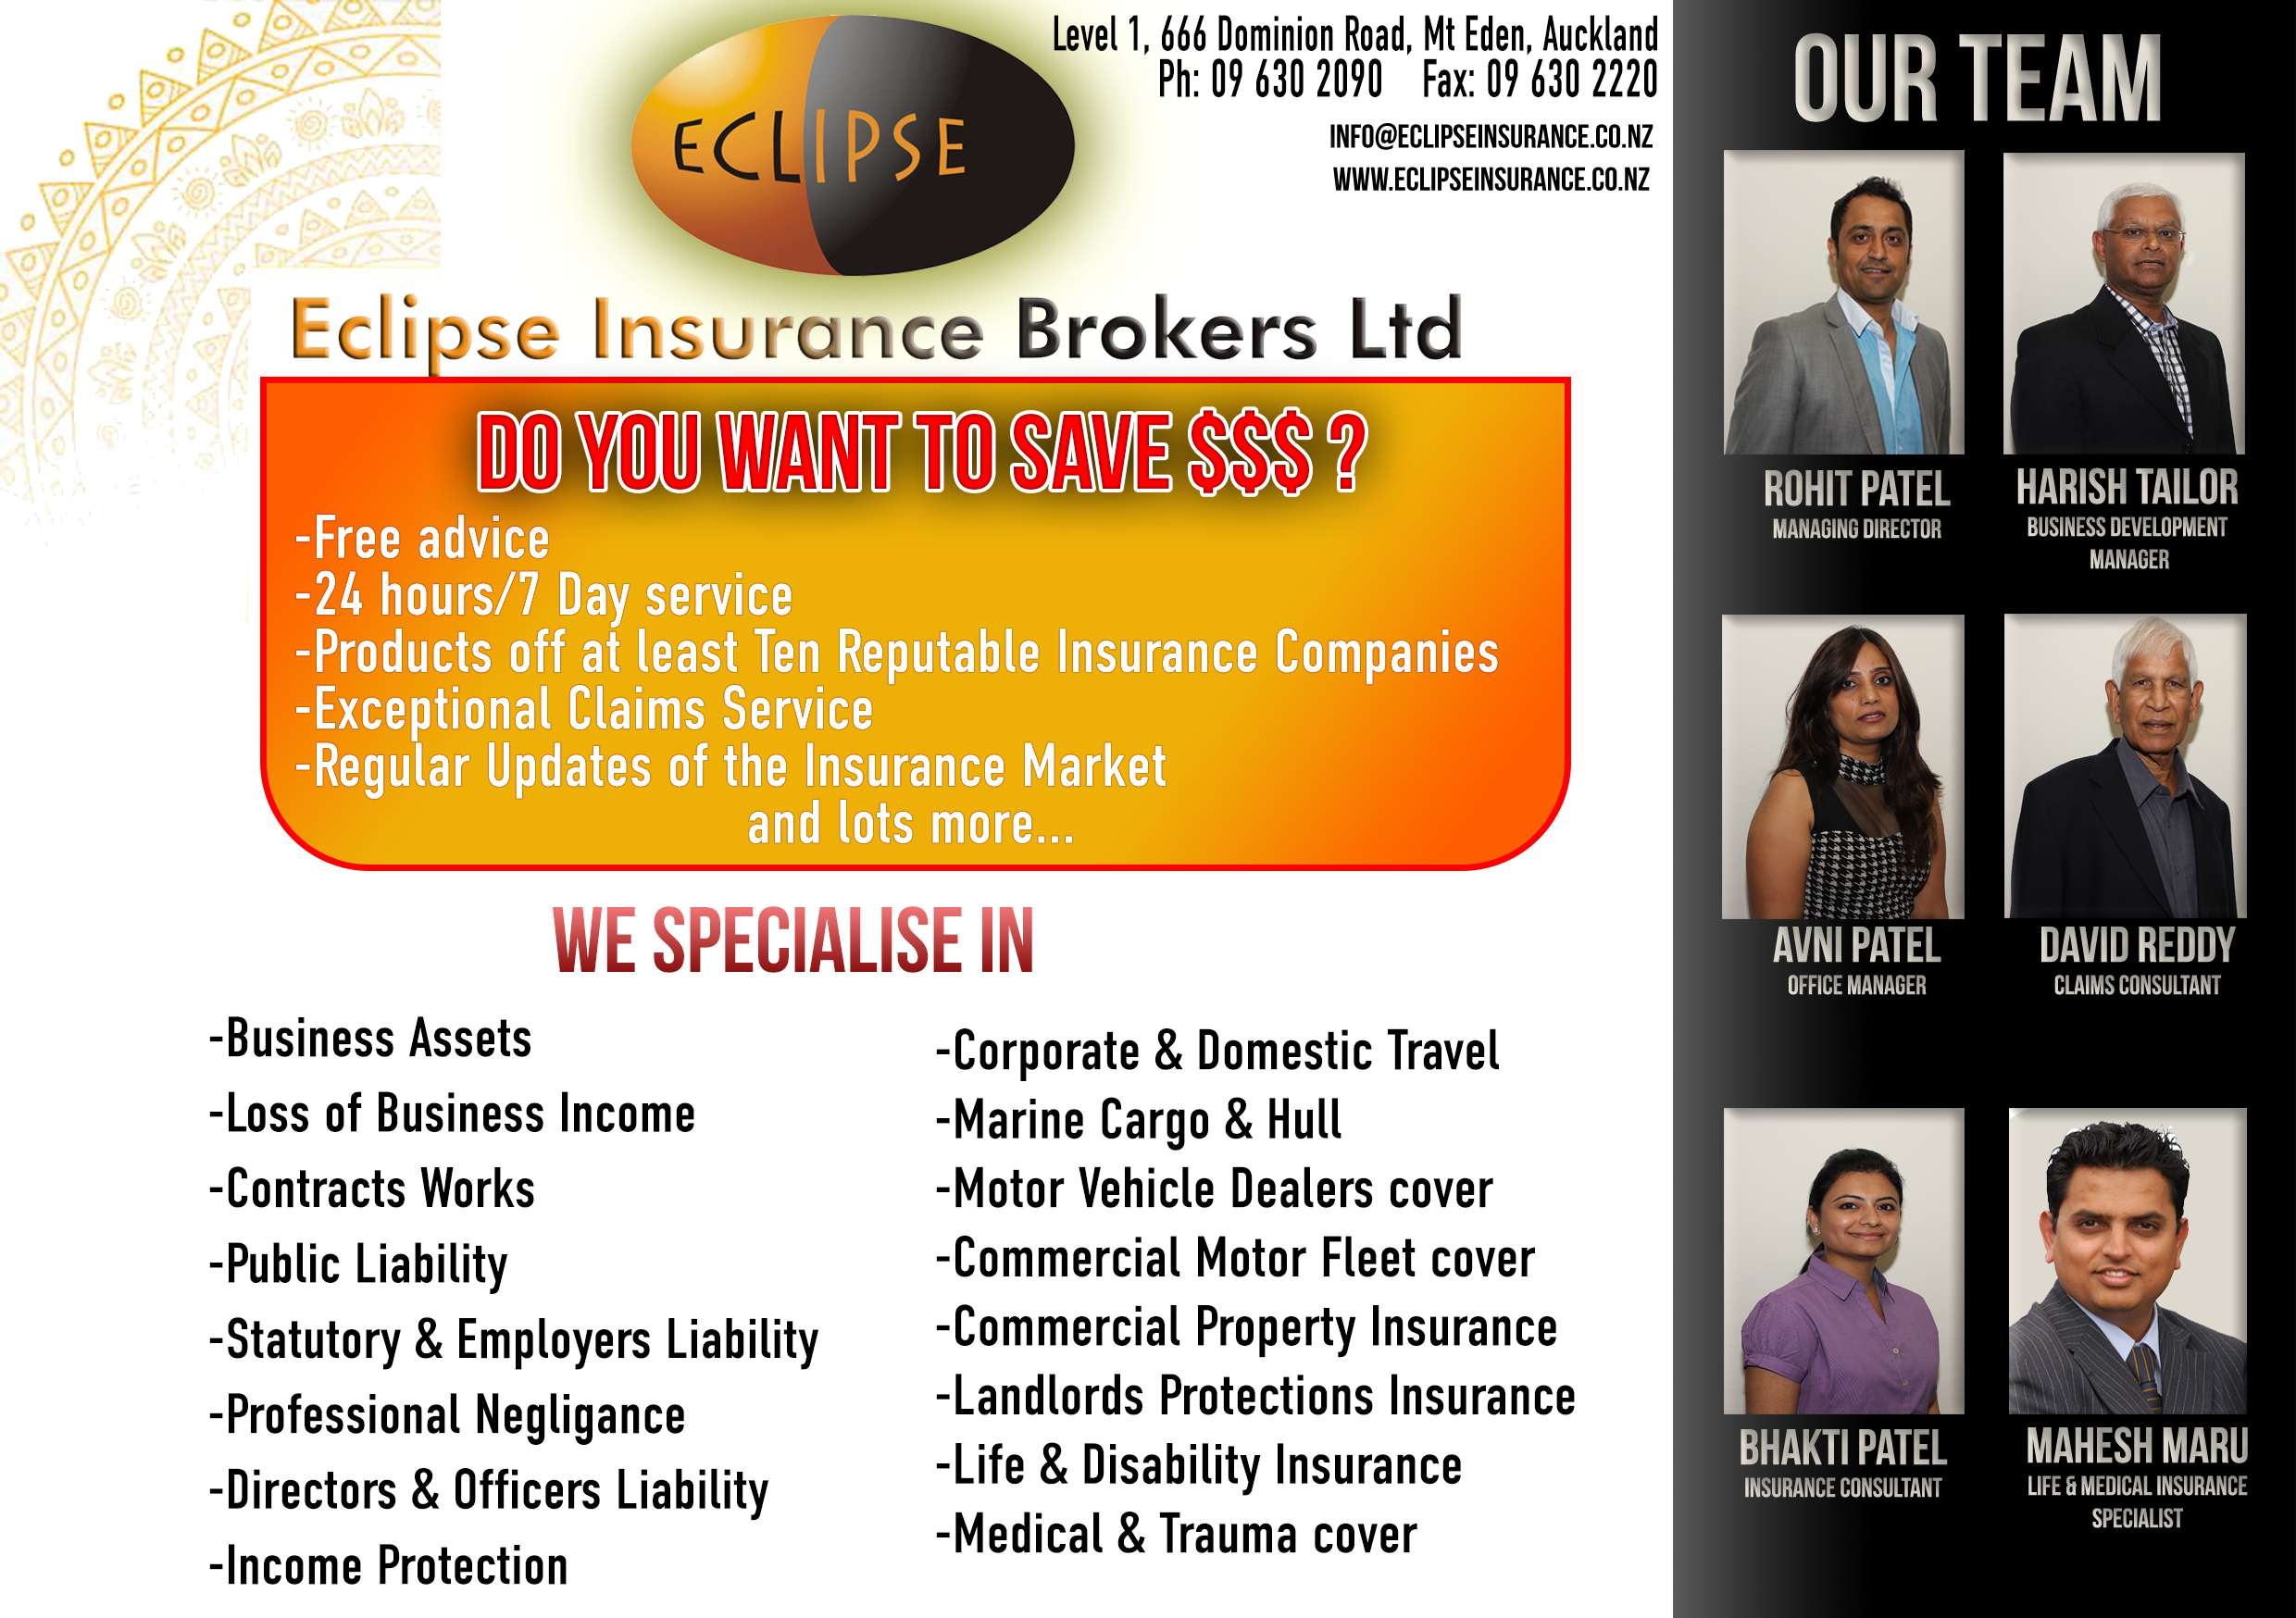 Eclipse Insurance   Eclipse insurance originally had an advert like this however was low resolution and was not up to print quality. I had remade it into HD quality and done photography for the team photos - the new advert I had produced had then been printed in the Indian Newslink newspaper and also the Western Leader.